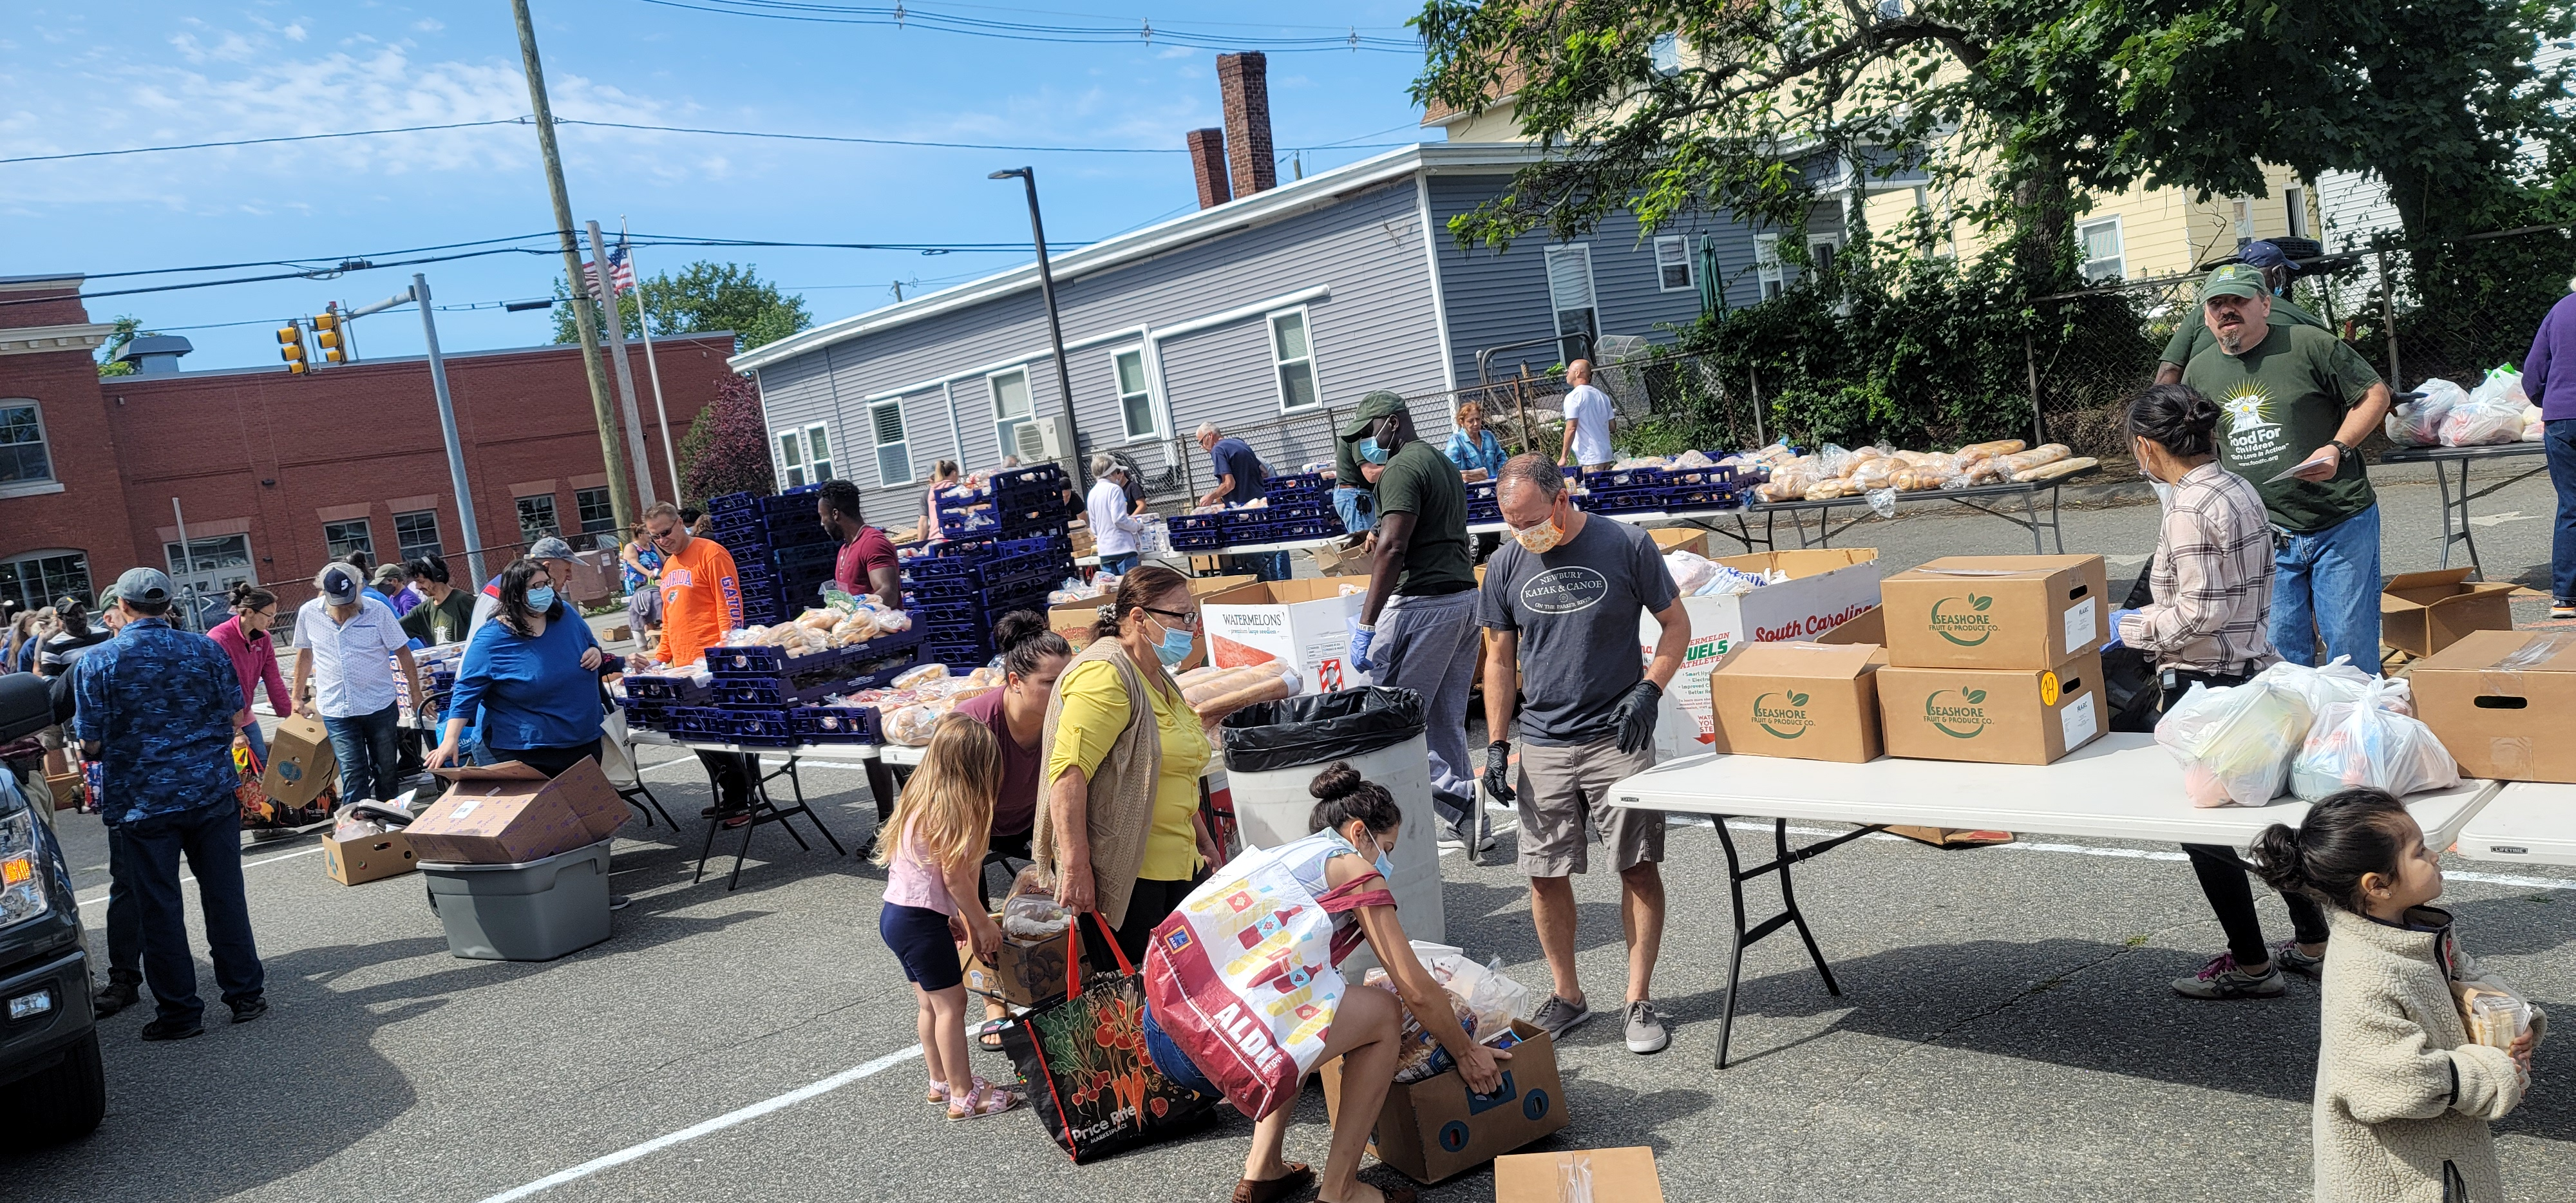 This isn't all the people who came and heard. Because of COVID-19, they have been spacing out the people who can go through the line. Food For Children does an OUTSTANDING job getting food for people. It's amazing. And they hear the Gospel, and that's eternal.